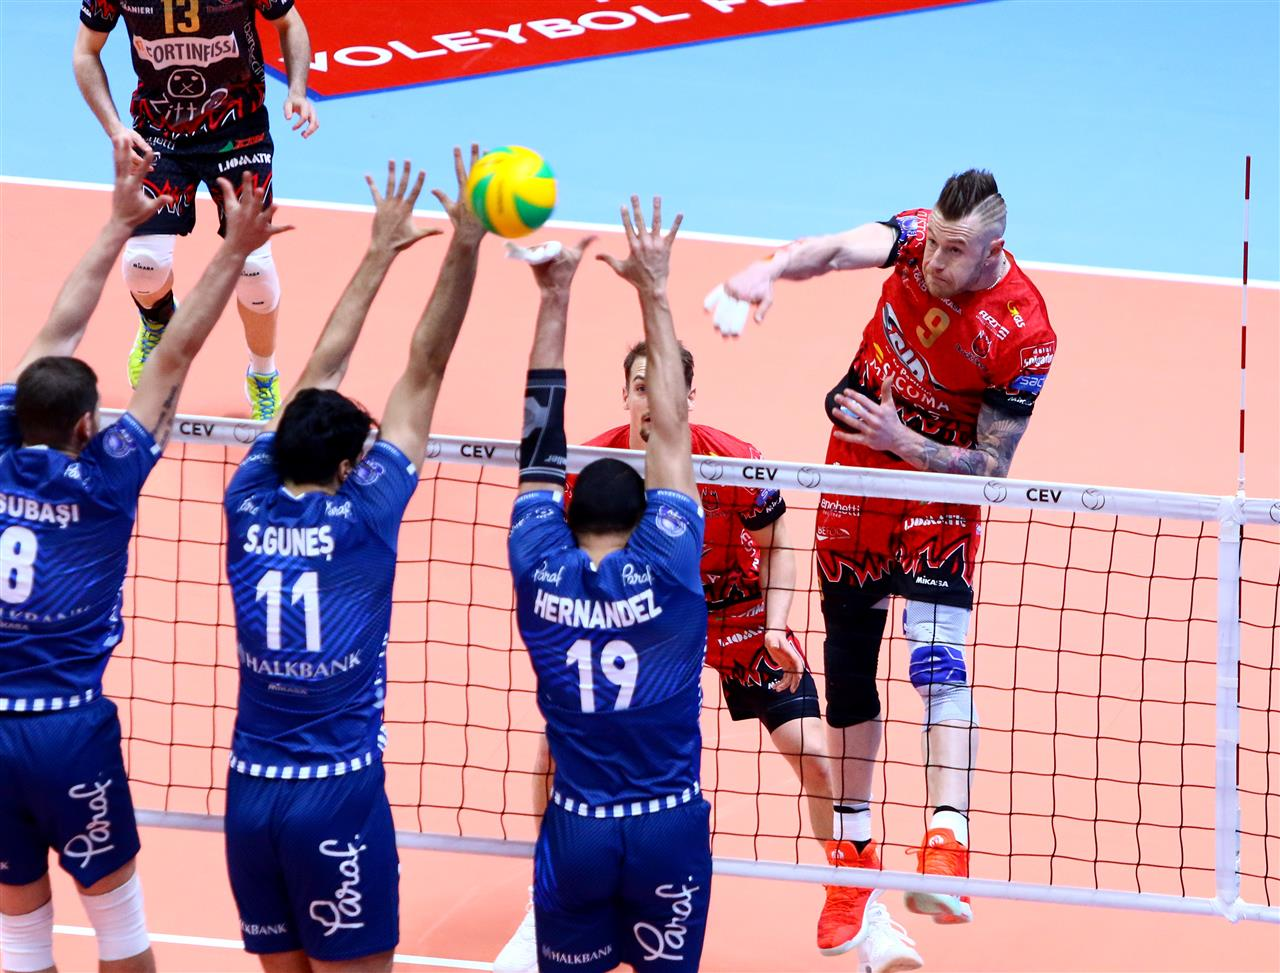 Champions League maschile: Perugia vince in tre set ad Ankara